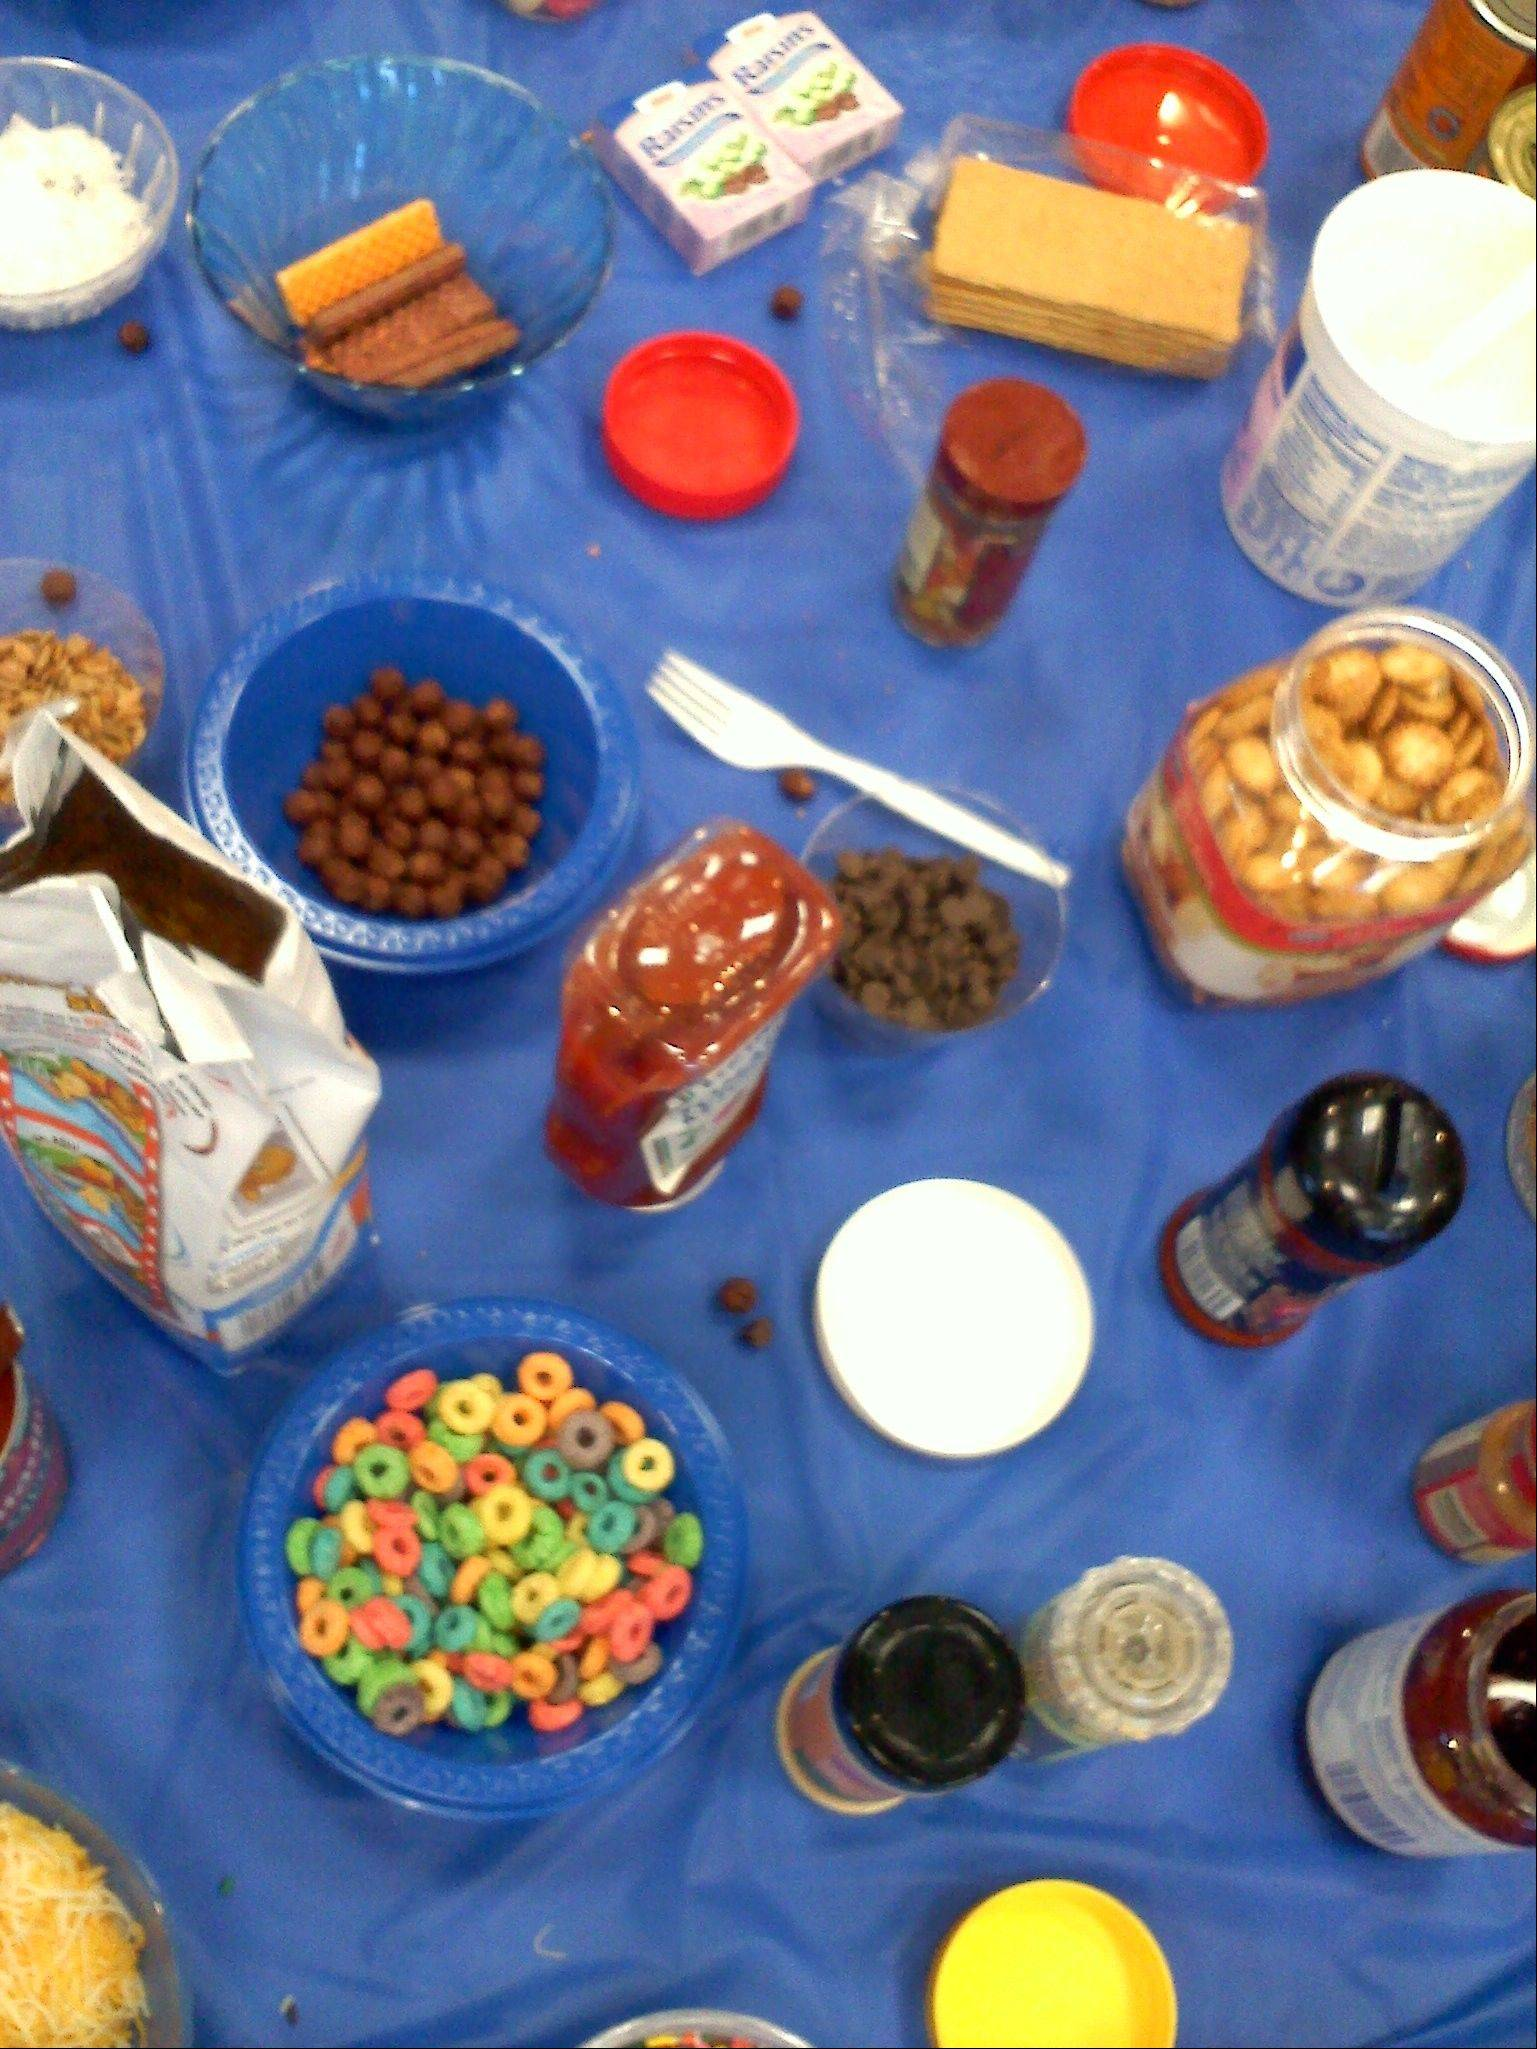 Summer cooking club furthers culinary creativity